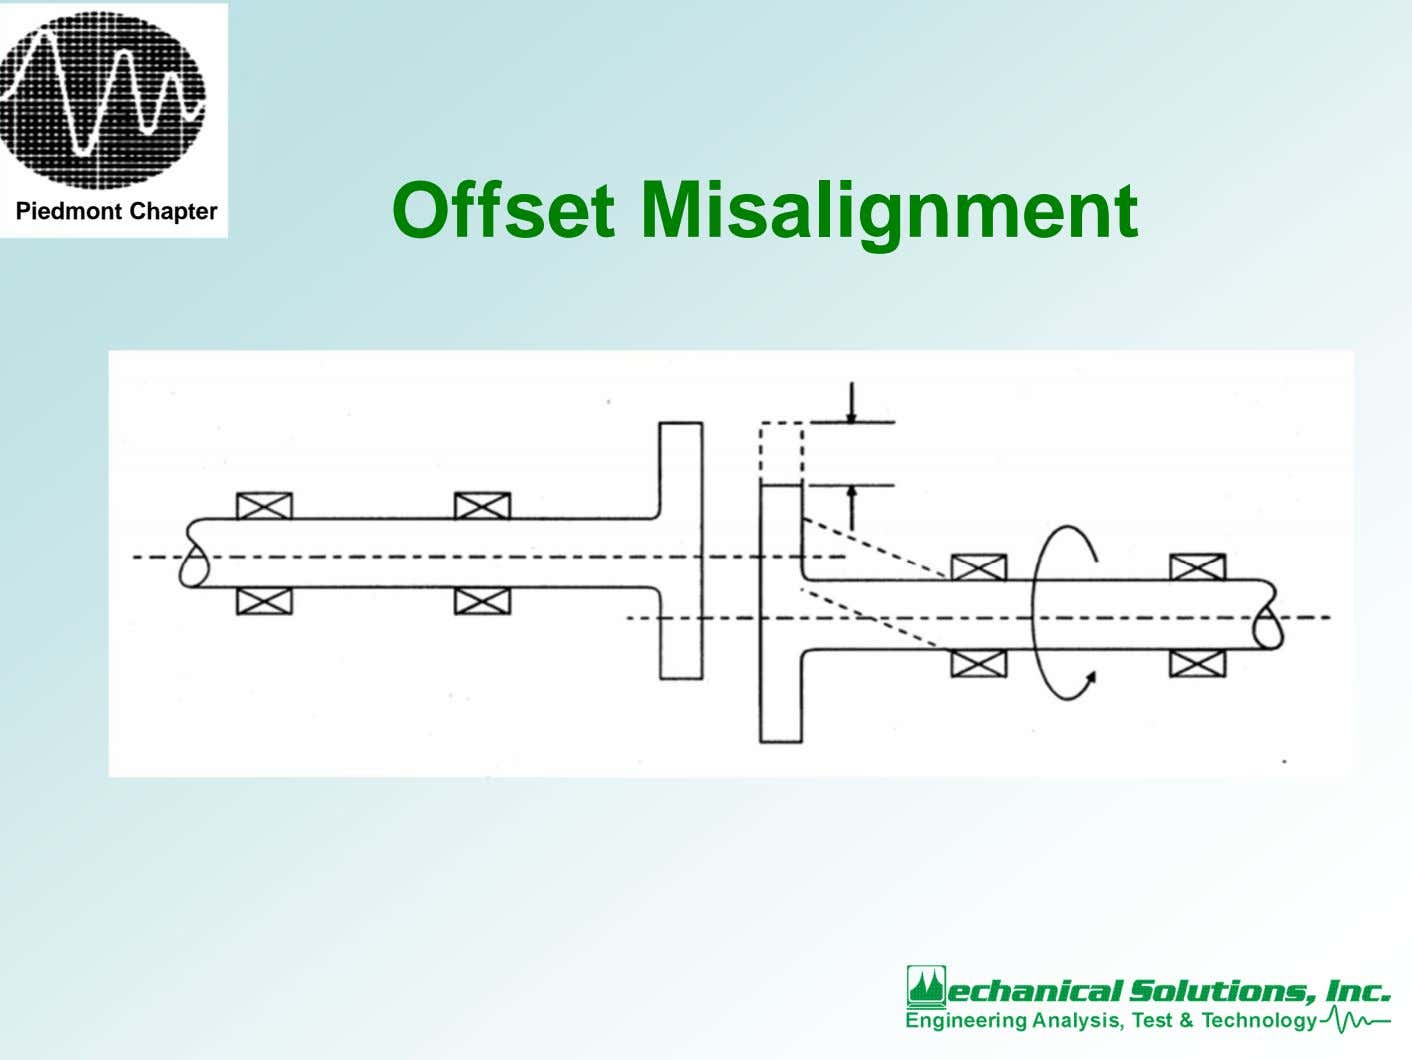 Piedmont Chapter Offset Misalignment